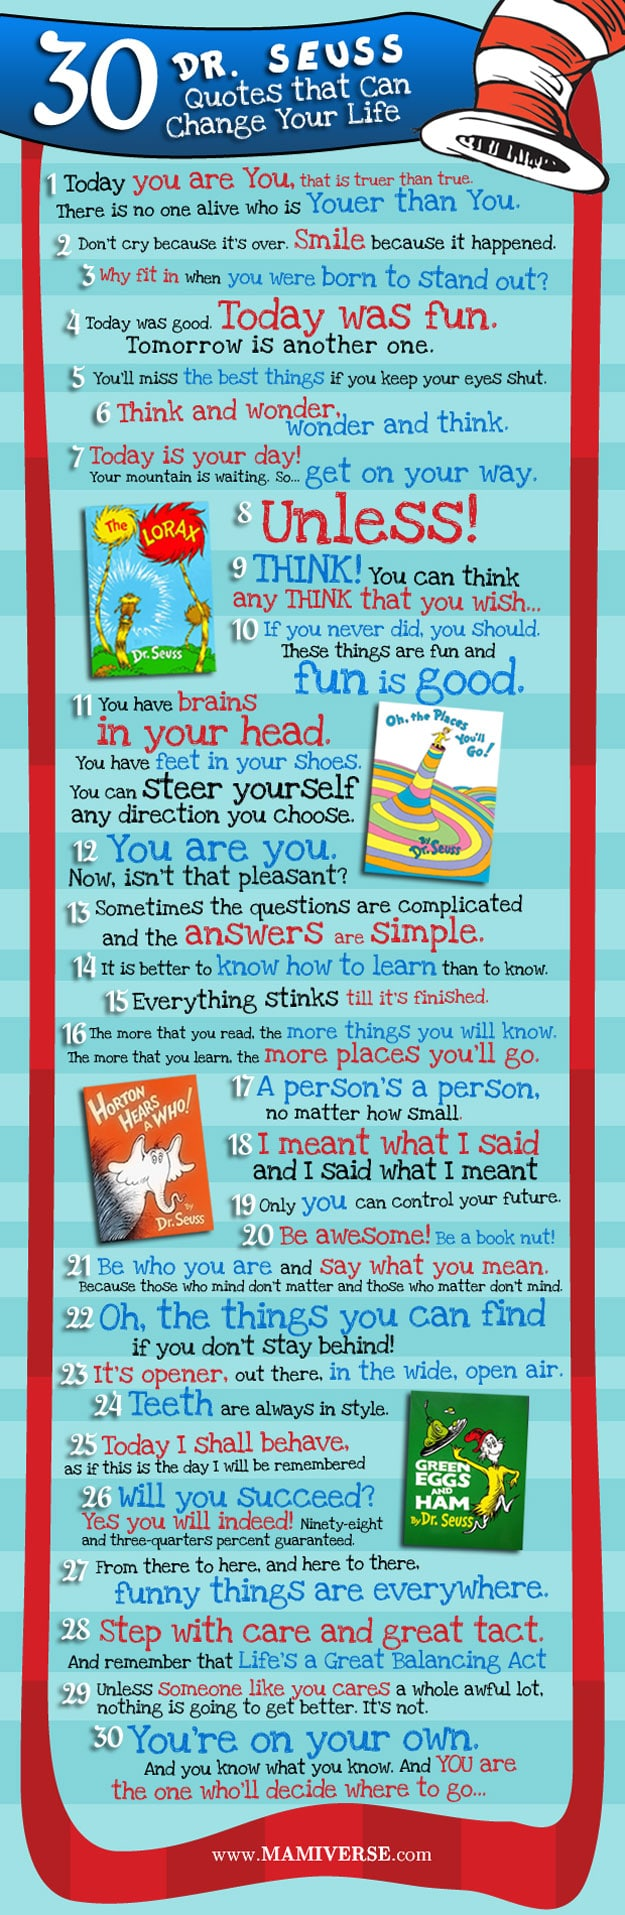 30 Dr. Seuss Quotes That Could Change Your Life Today [Chart]